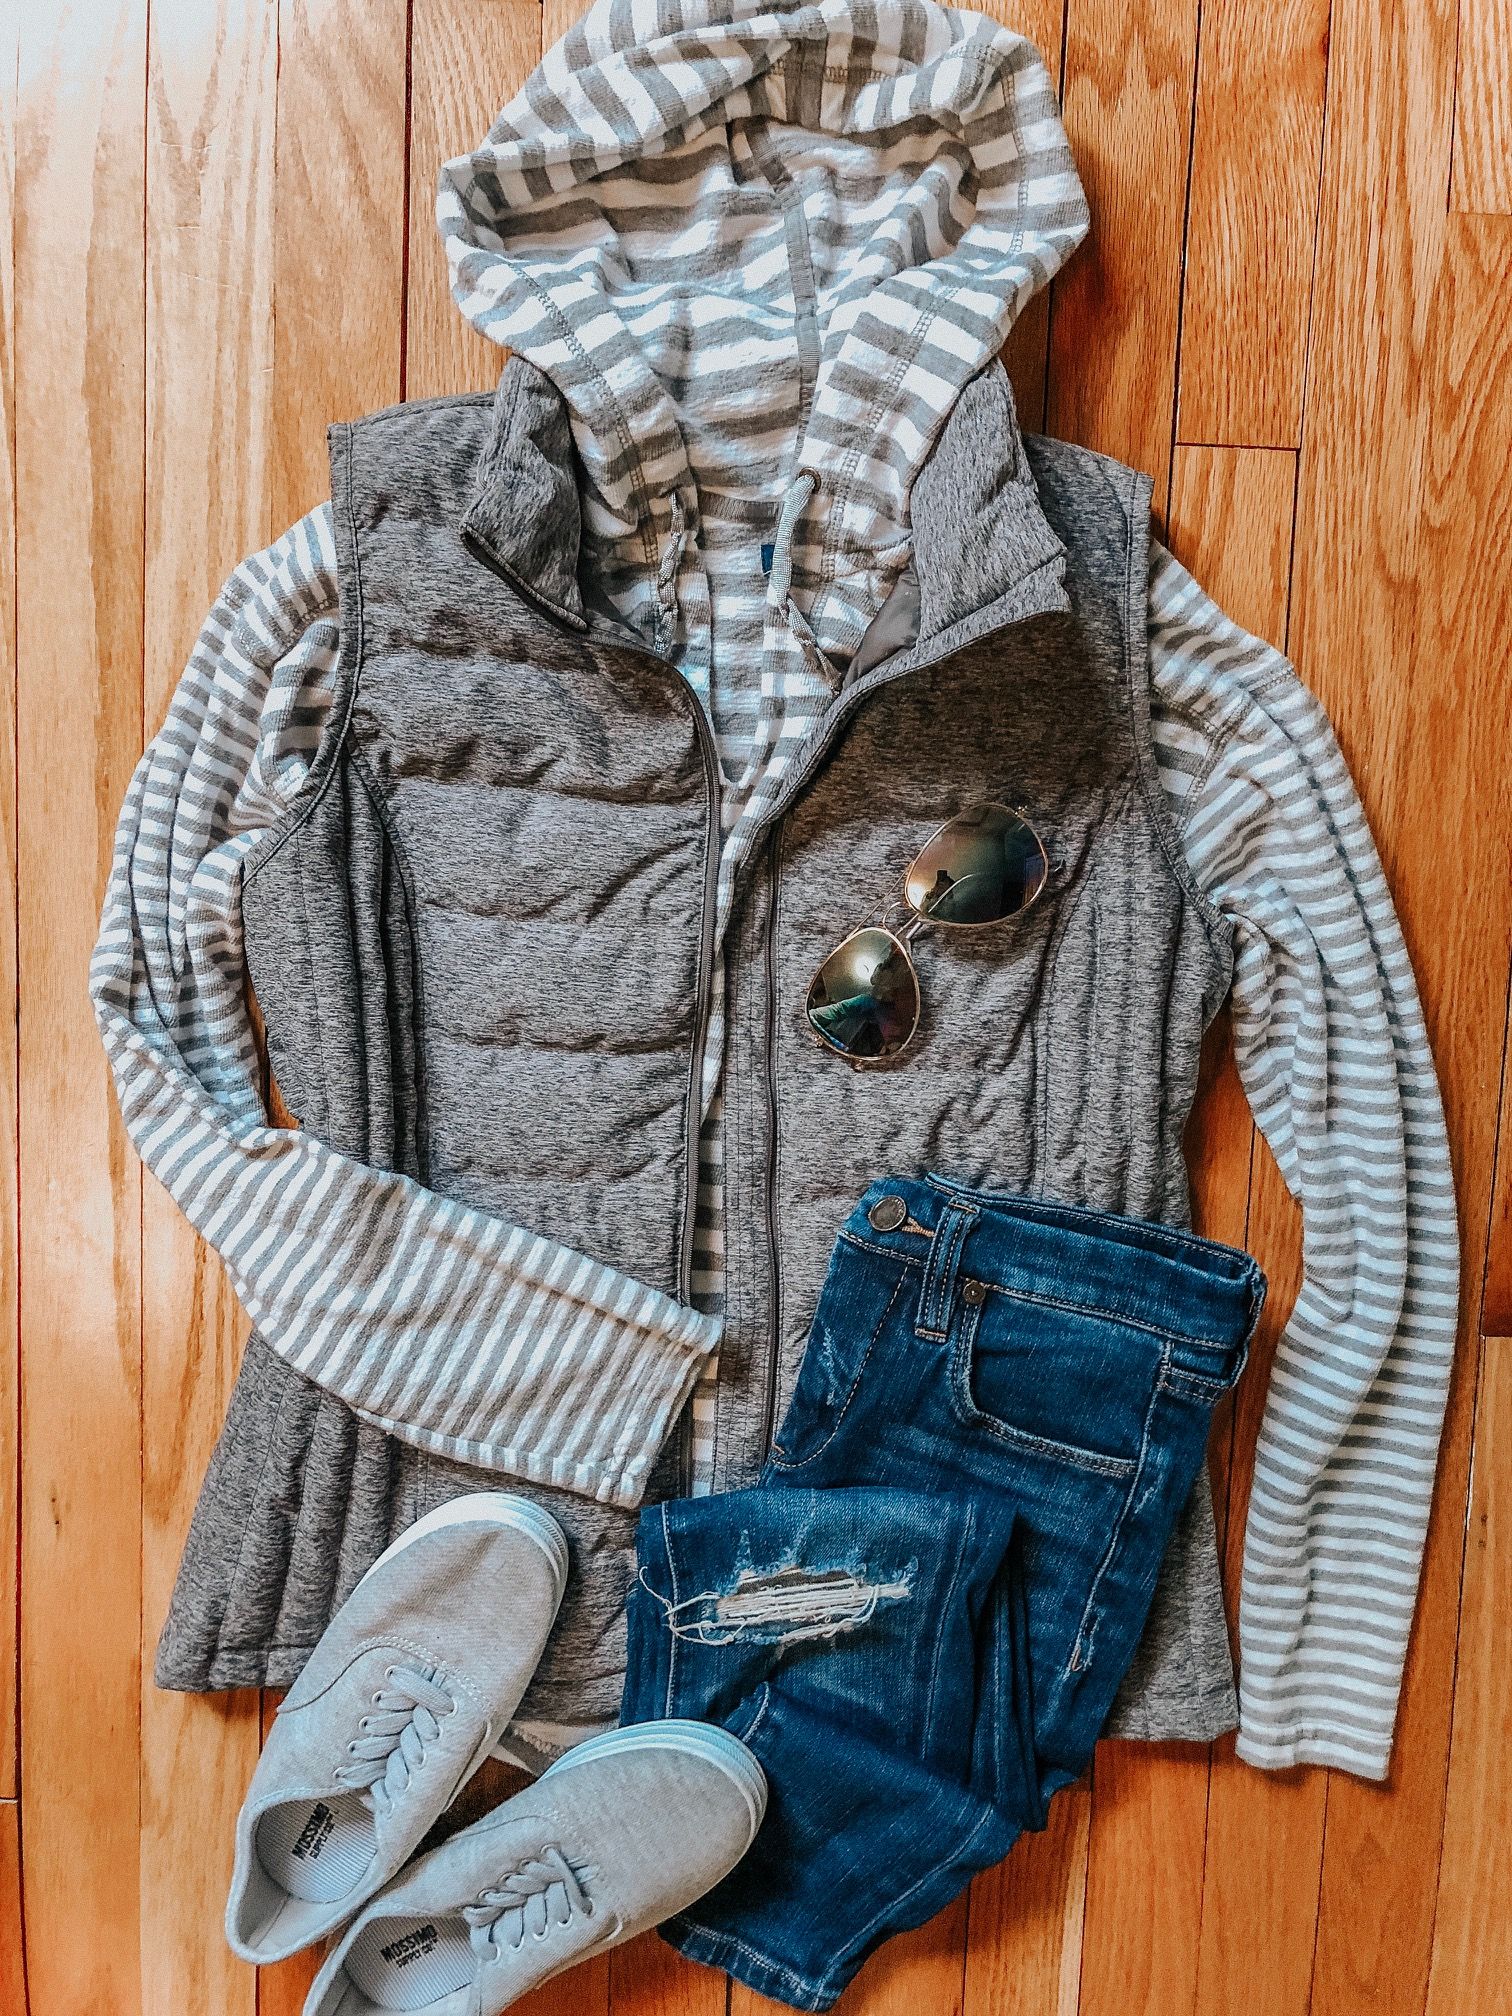 Fall Instagram Favorites | Daily Splendor Life and Style Blog | Denim, striped hoodie, vest and canvas shoes #casualstyle #casualoutfit #momstyle #everydayfashion #fallstyle #fallneutrals #puffervest